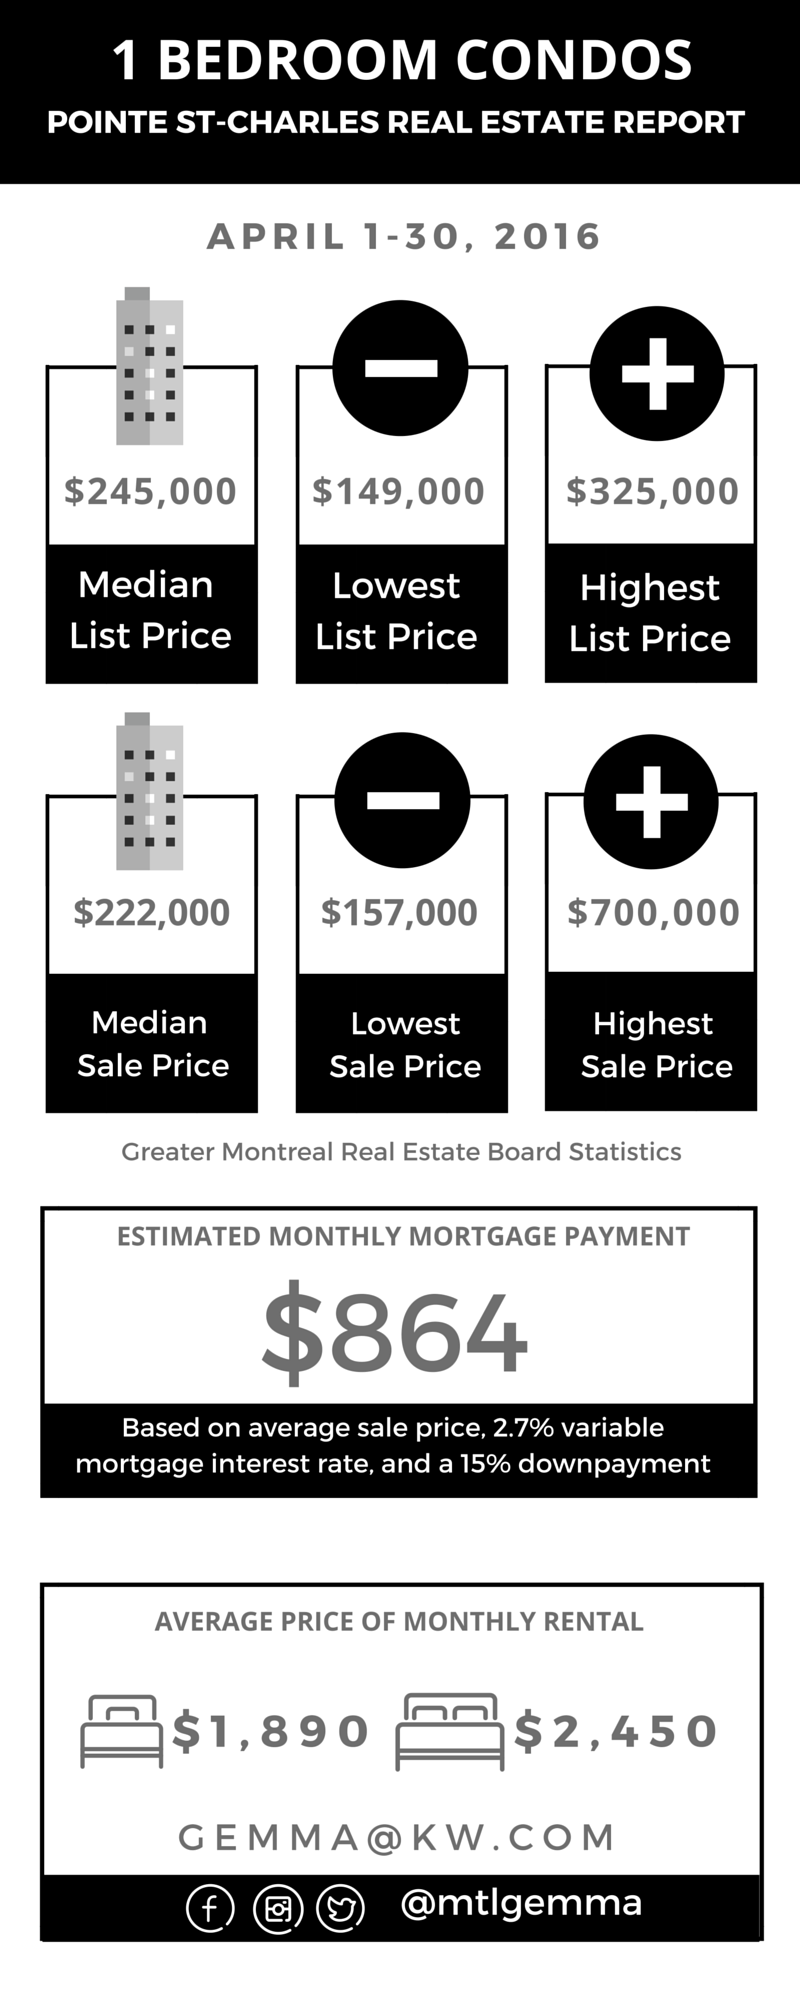 Pointe St-Charles Real Estate Report April 2016 02